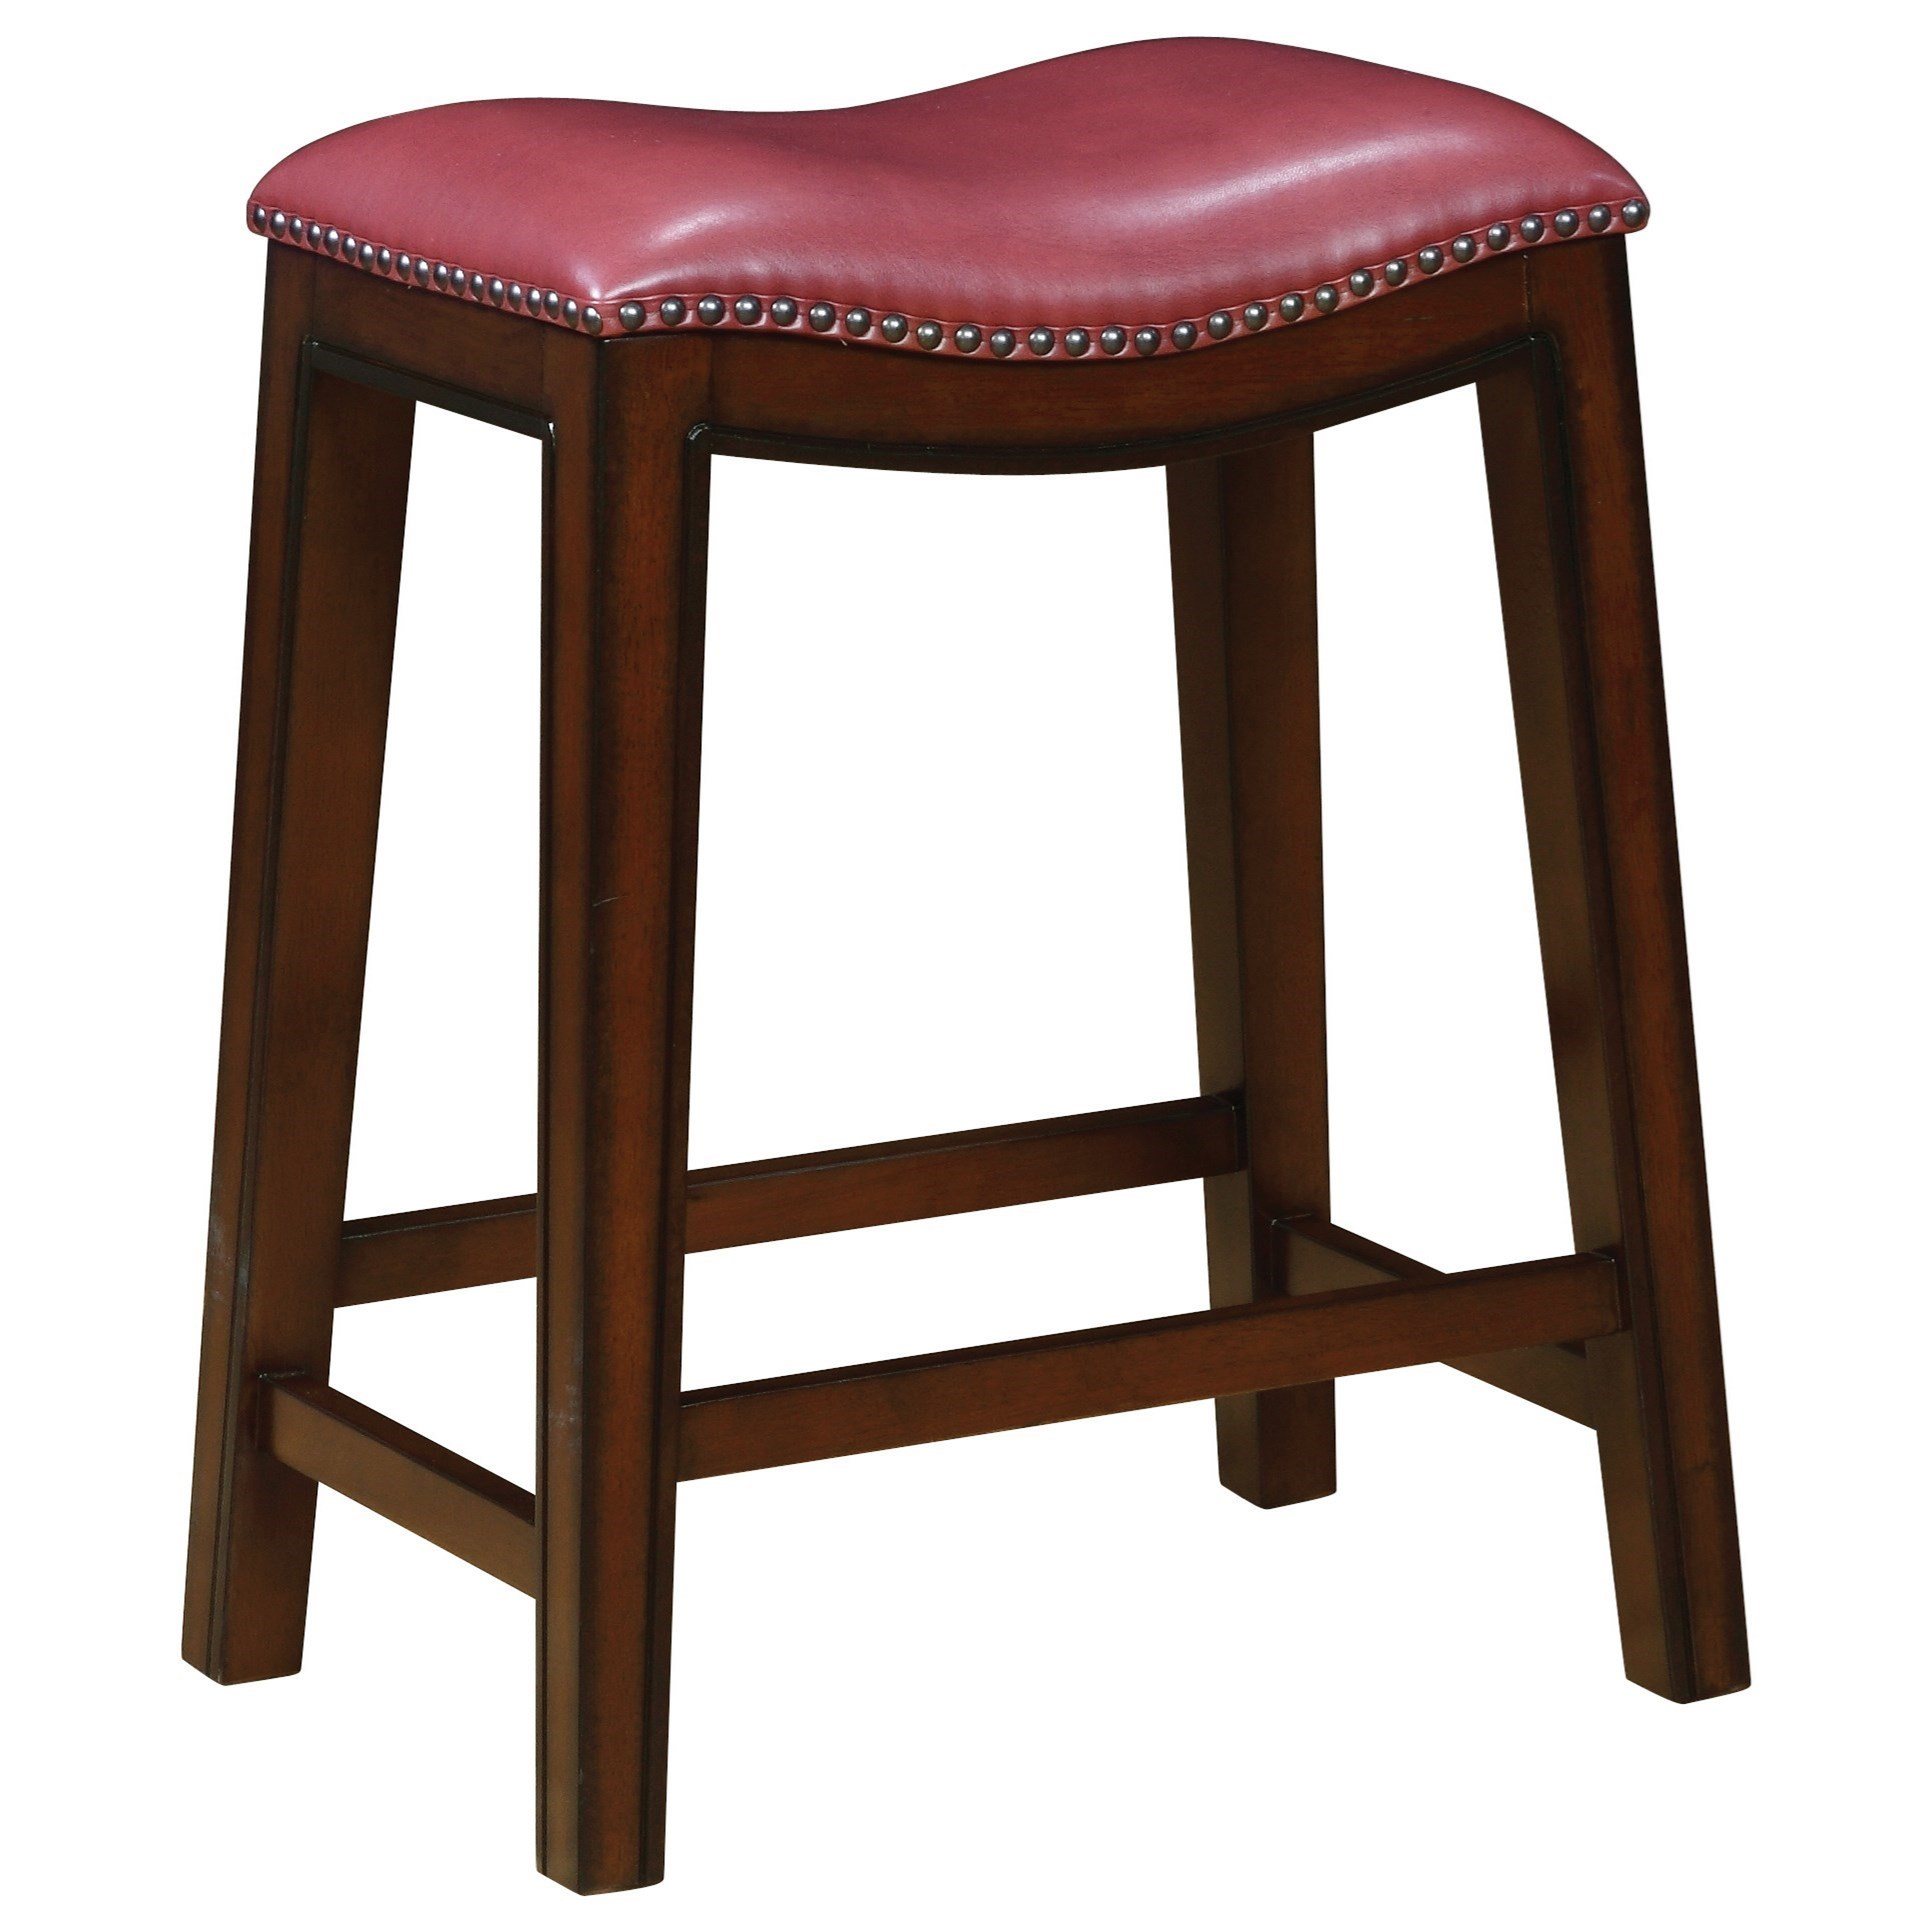 chair stool counter height toddler high booster seat coaster dining chairs and bar stools 122267 backless